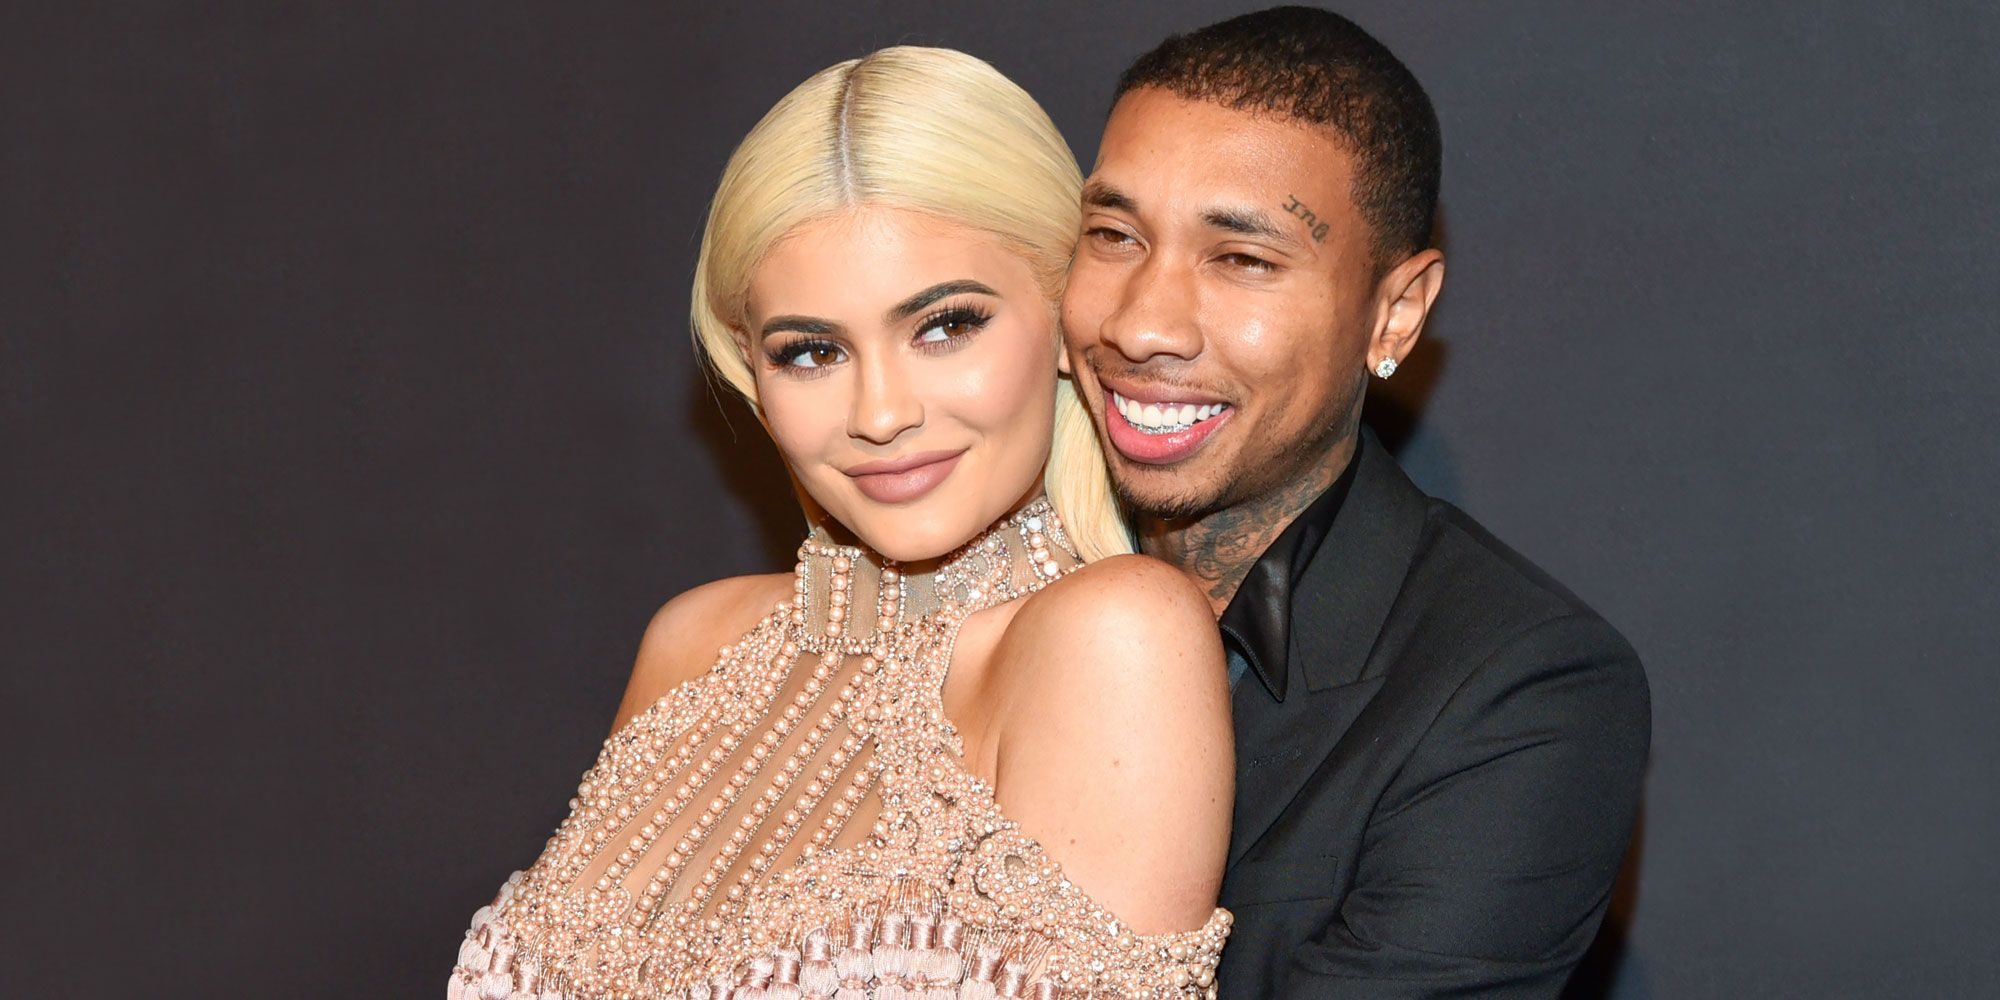 Transgender dating tyga